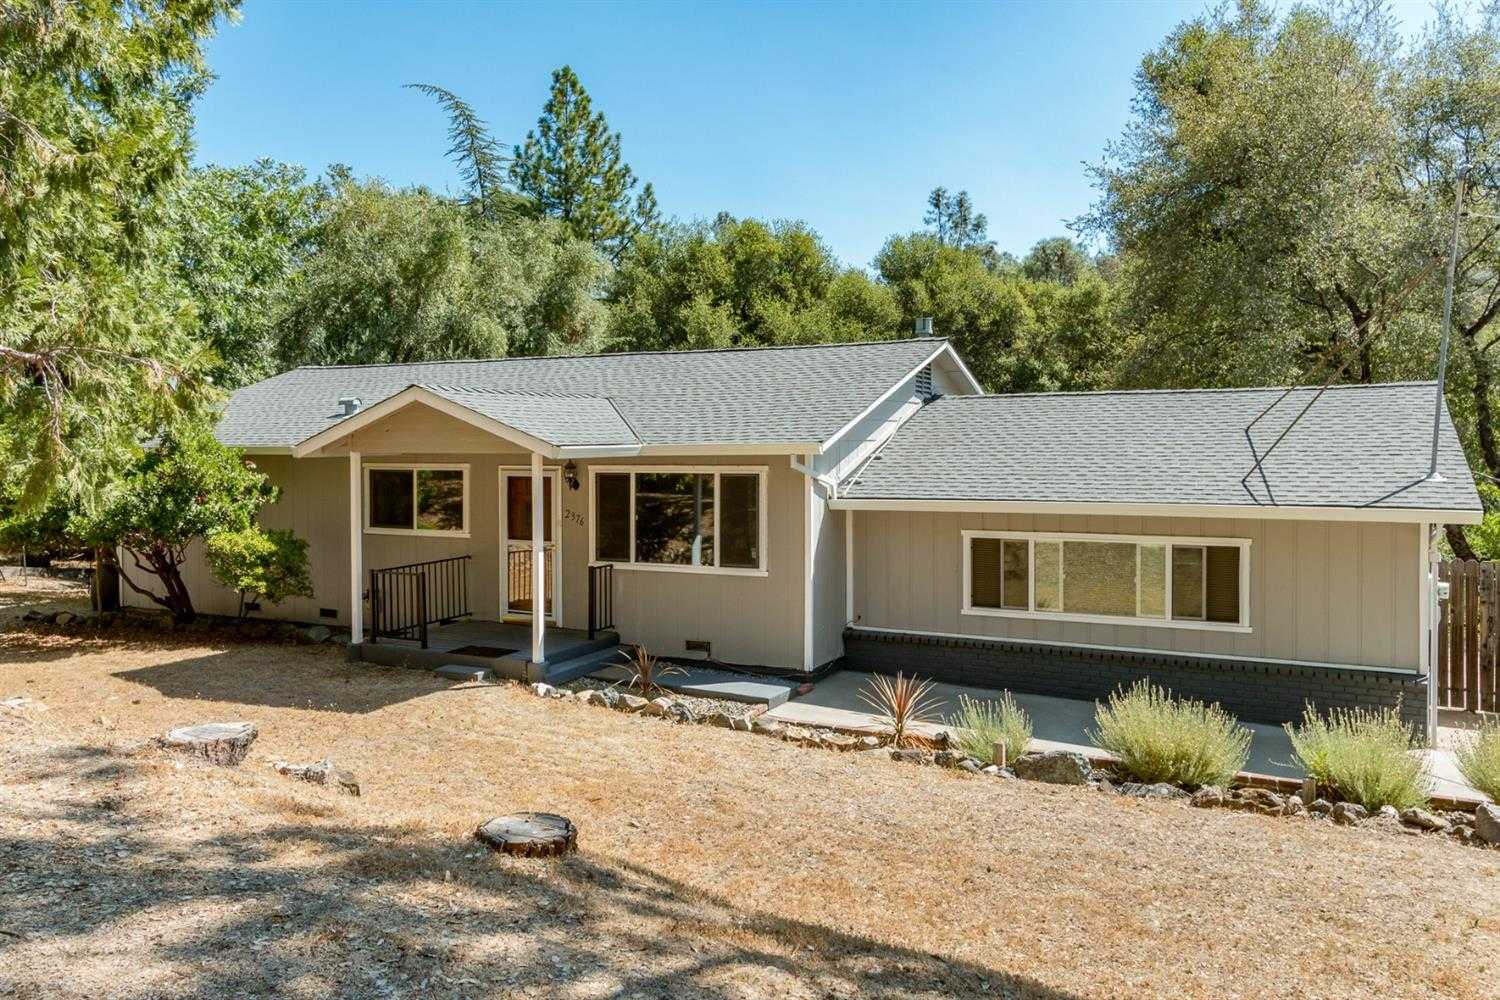 2376 Laura John Way Placerville, CA 95667